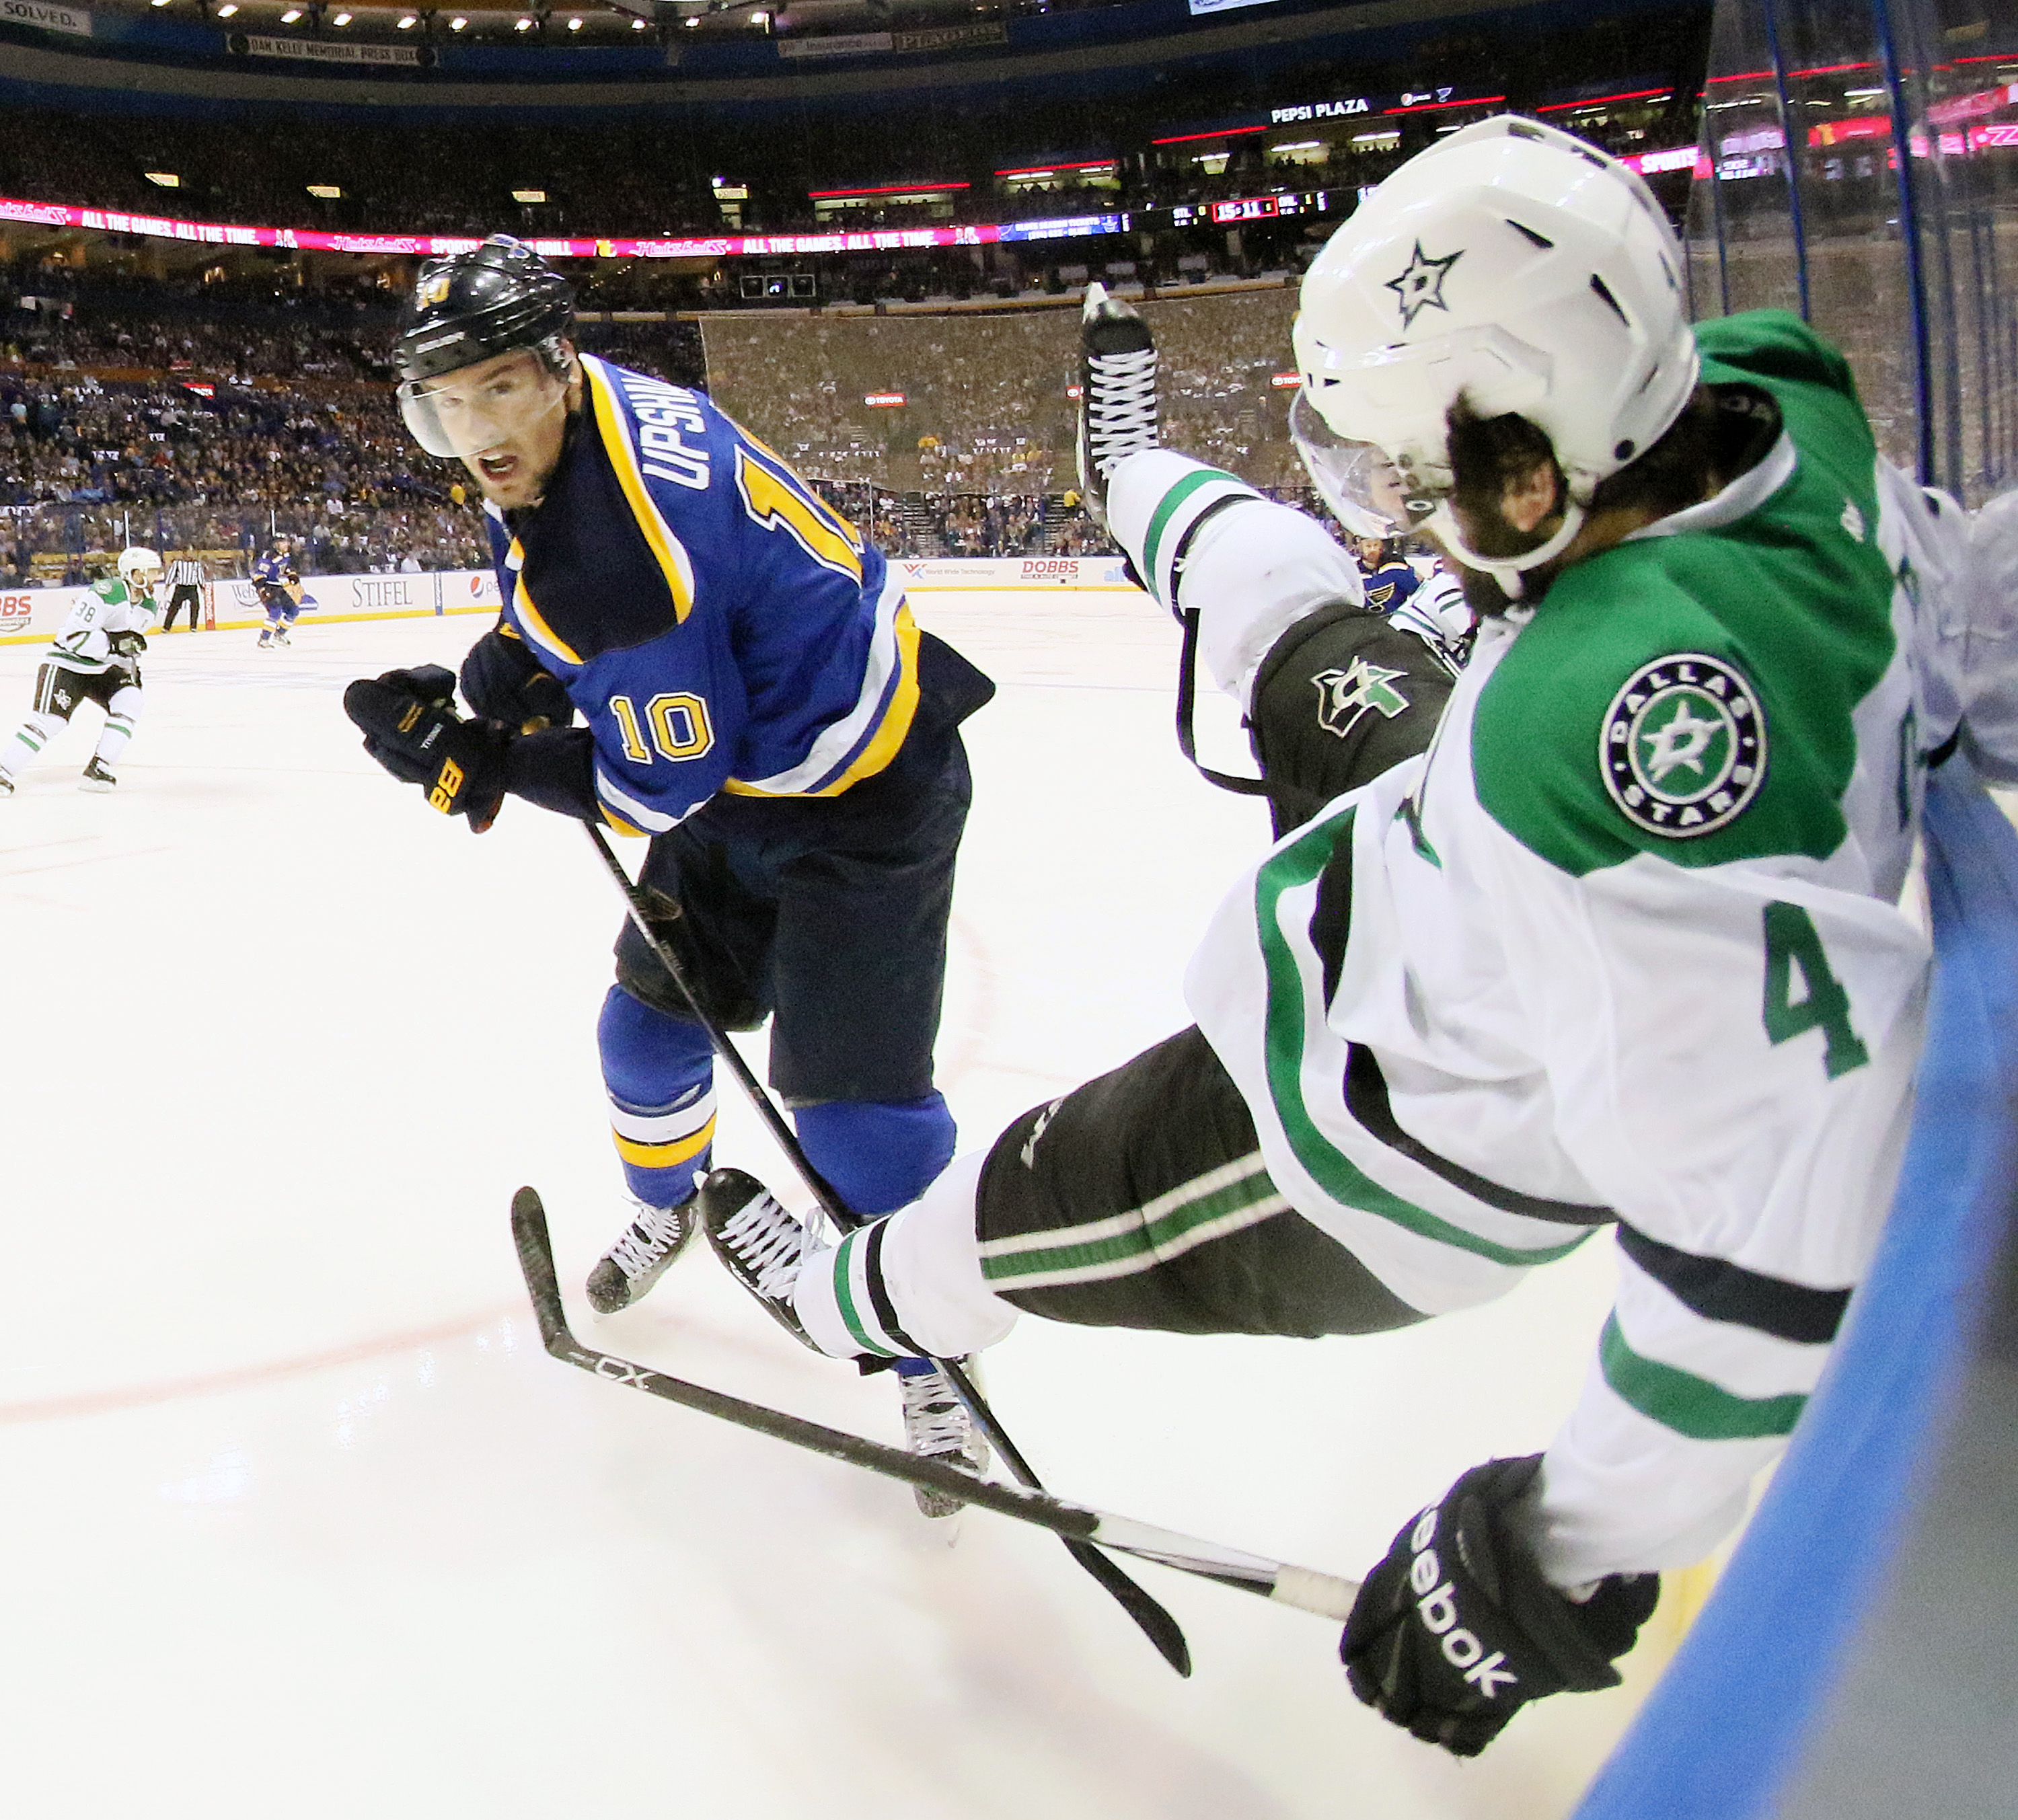 St. Louis Blues right wing Scottie Upshall, left, checks Dallas Stars defenseman Jason Demers into the boards in the first period of Game 3 of the NHL hockey Stanley Cup Western Conference semifinals against the Dallas Stars, Tuesday, May 3, 2016, in St.